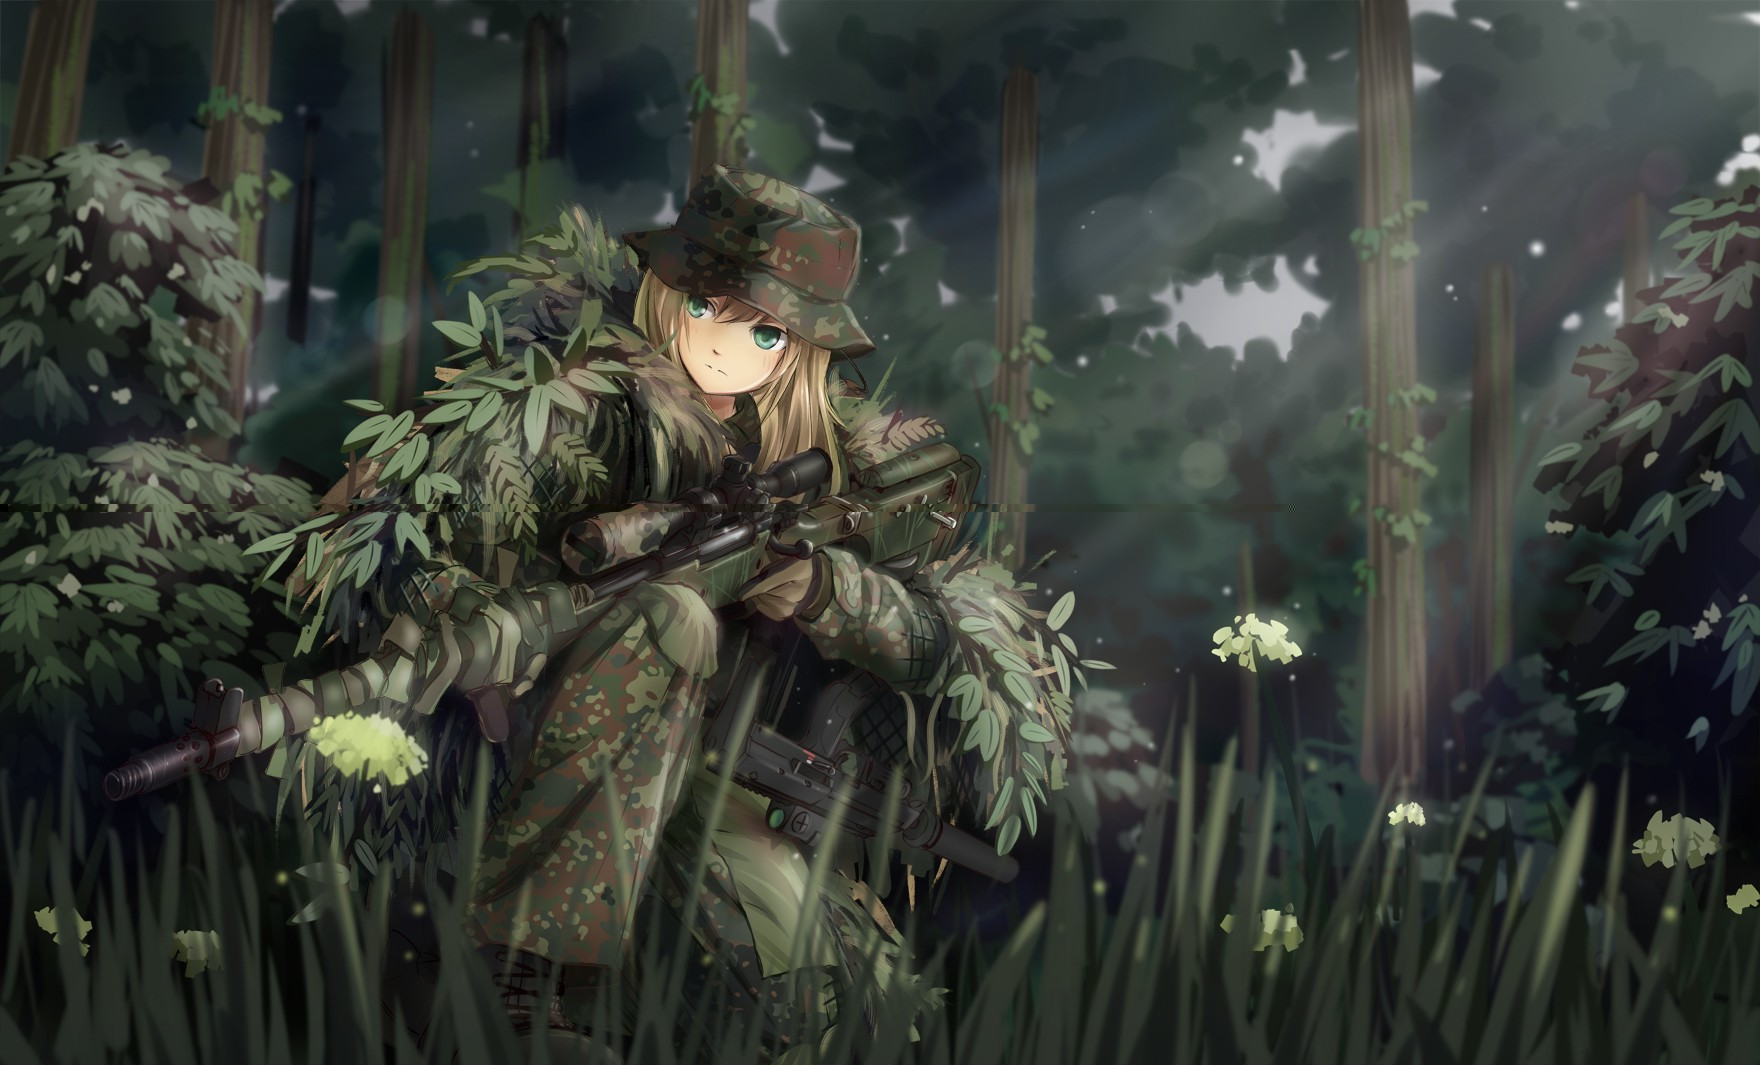 61106 Anime Girls Original Characters Military Weapon Camouflage Ghillie Suit Sniper Rifle MP7 Forest Soldier Gun TC1995 Fantasy Art Manga